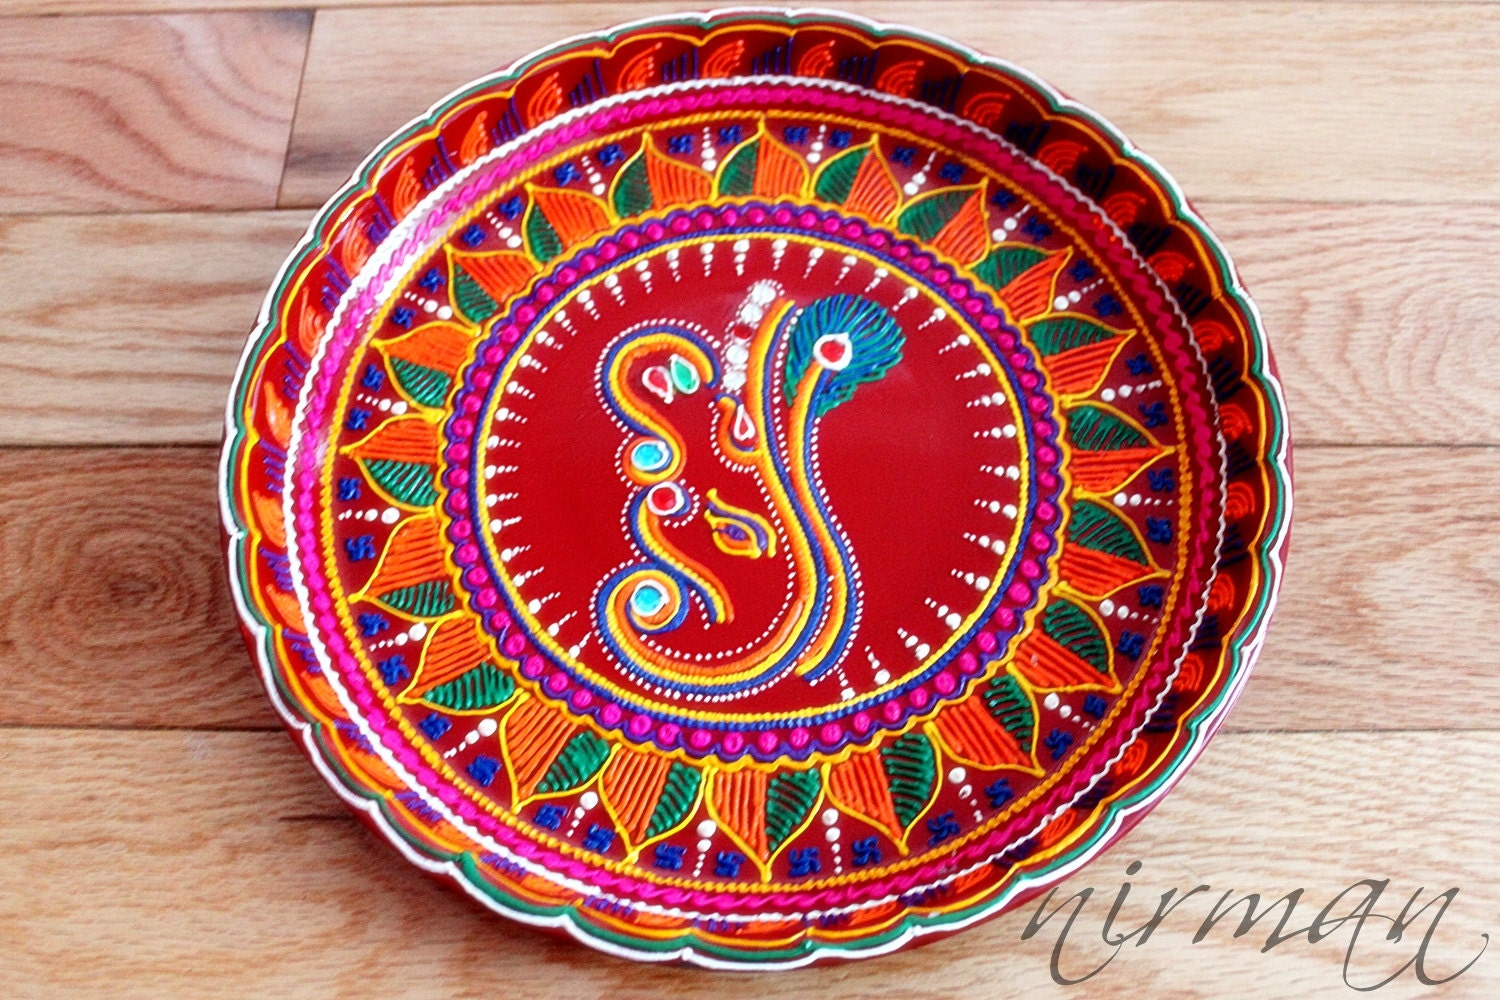 Ganesh pooja thali decorative henna mehndi design for Aarti thali decoration ideas for ganpati